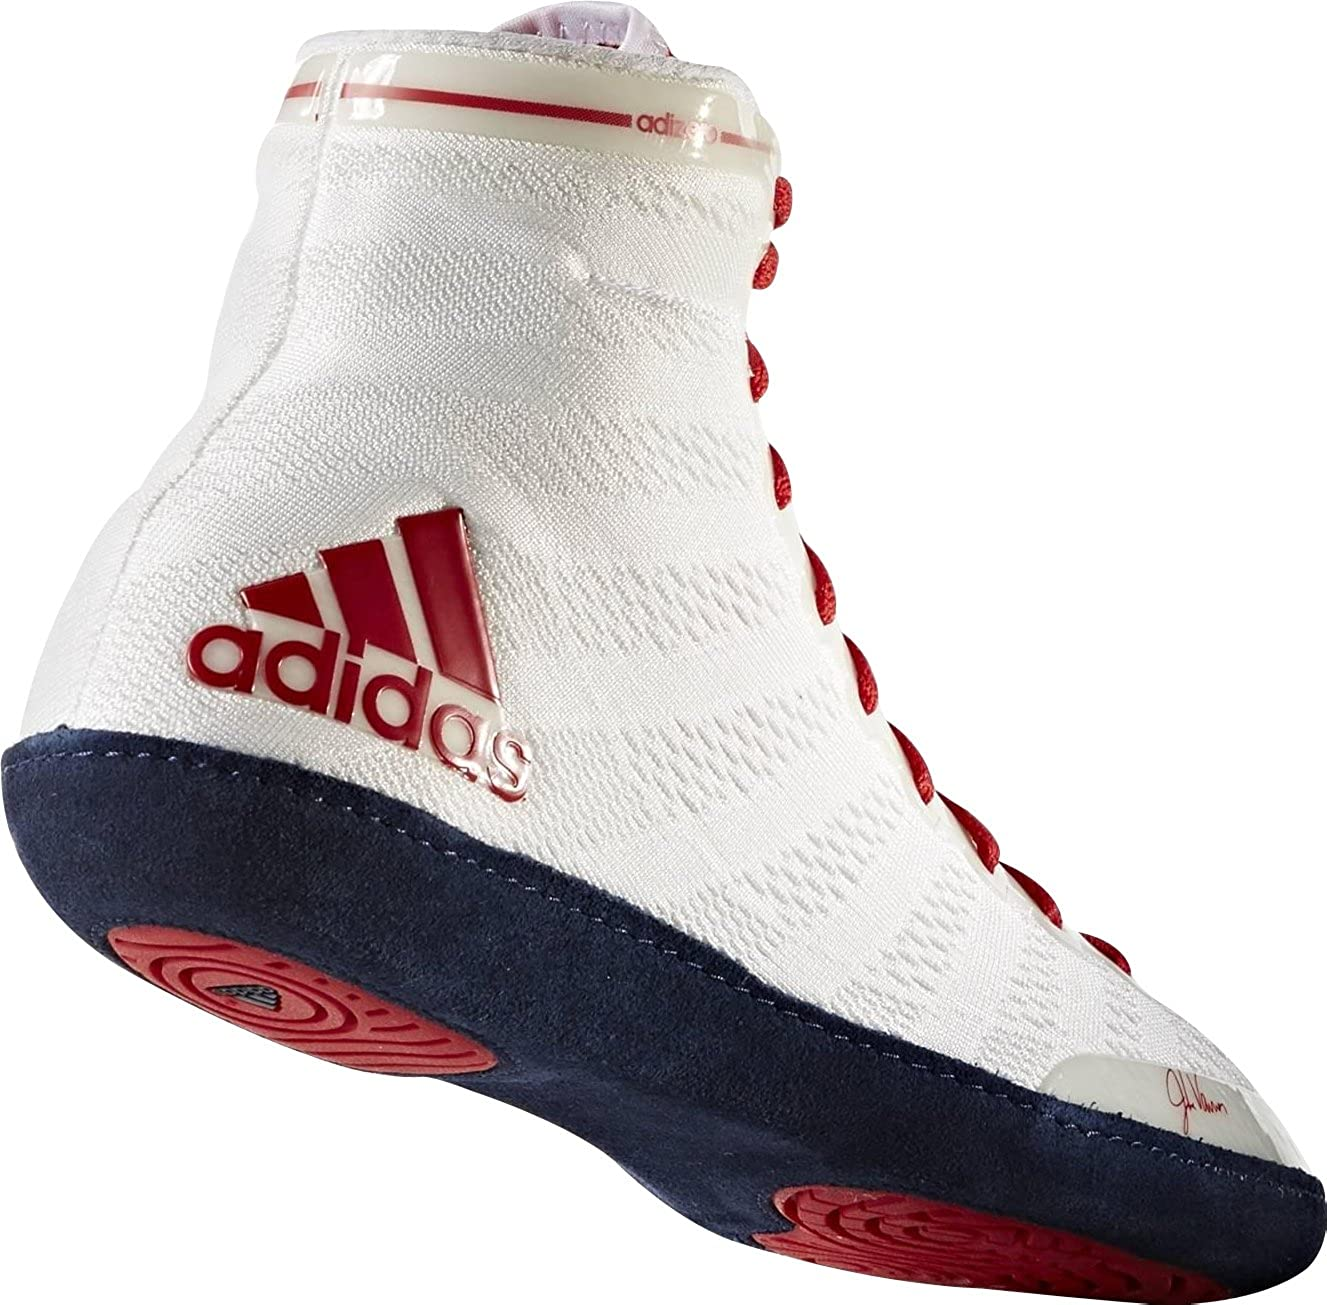 chaussures lutte adidas